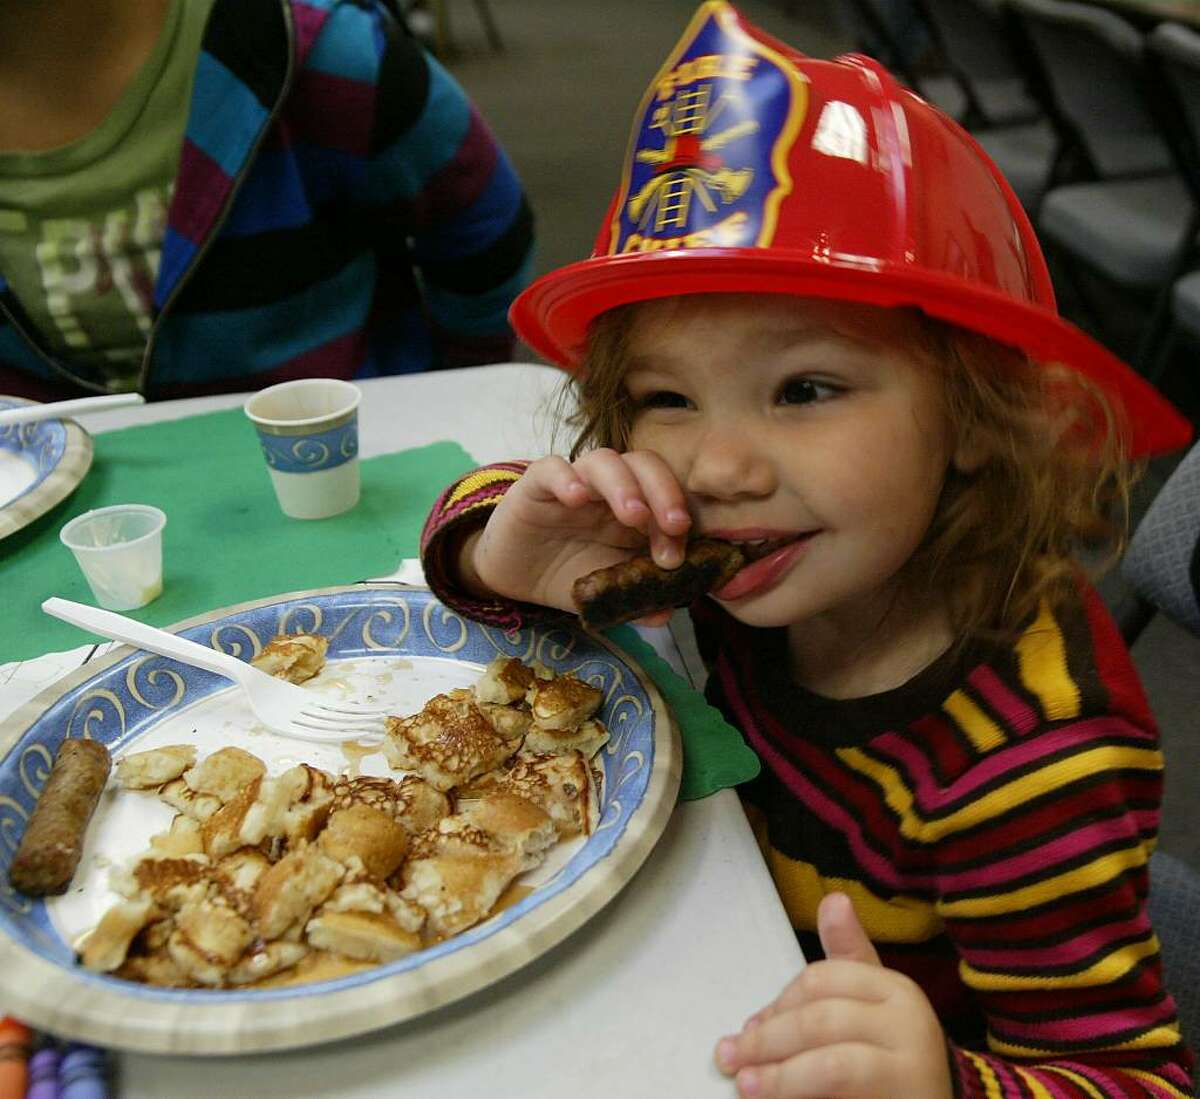 Samantha Buttress, enjoys a pancake breakfast at the Trumbull Volunteer Fire Station on White Plains Road. The breakfast was a fundraising benefit for Alex Convertito, the 22 year old seriously injured in a September crash on Route 8, Sunday, Nov. 8, 2009.